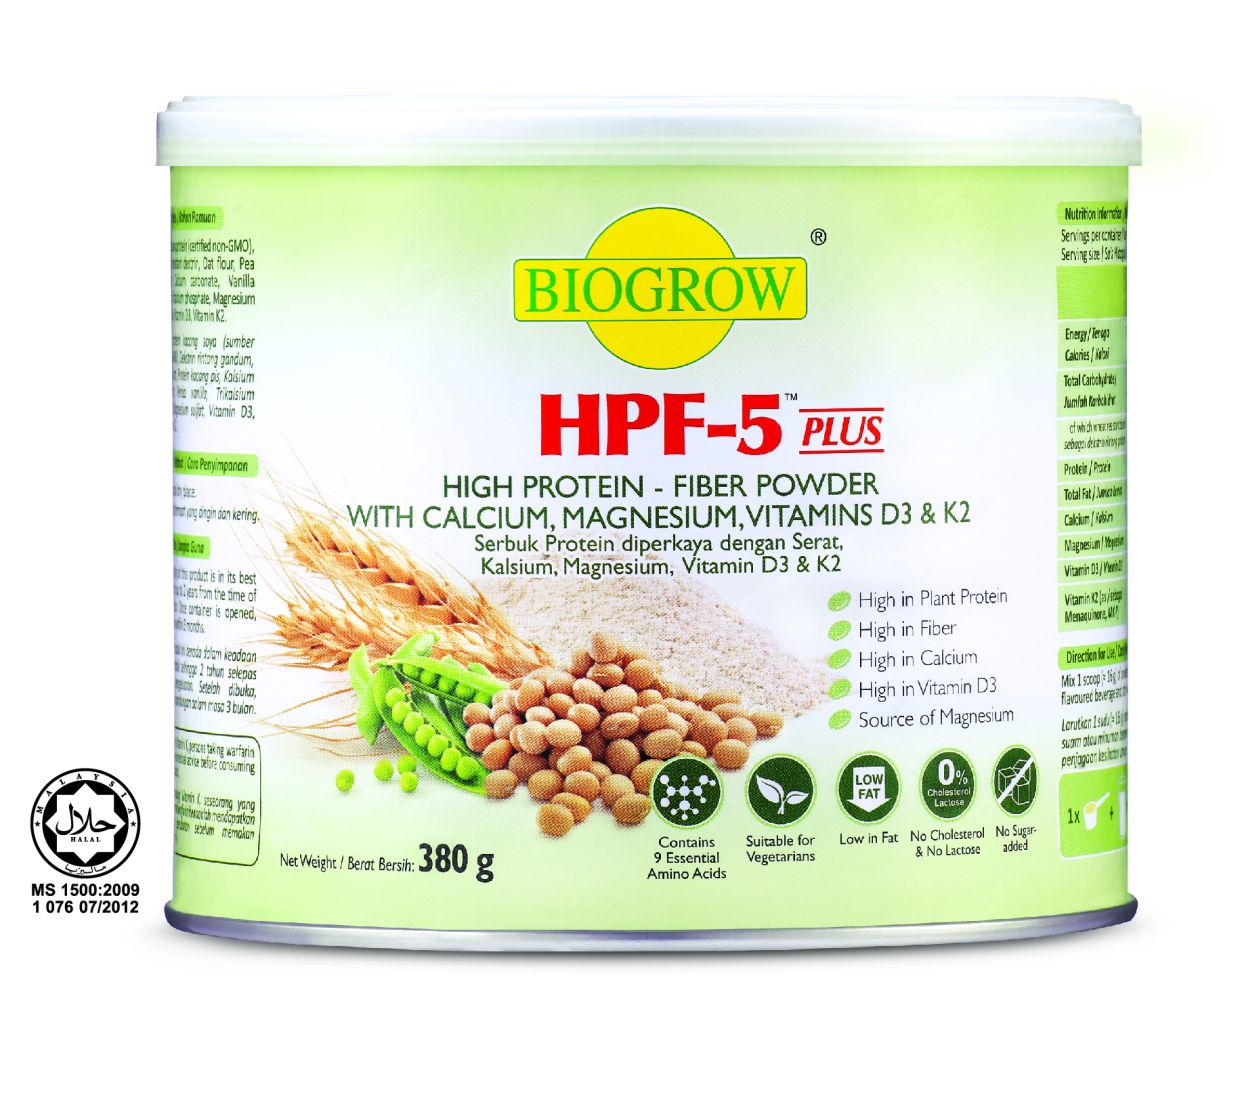 Biogrow HPF-5 PLUS is a new, improved formula with a unique blend of plant protein and digestive fibre.